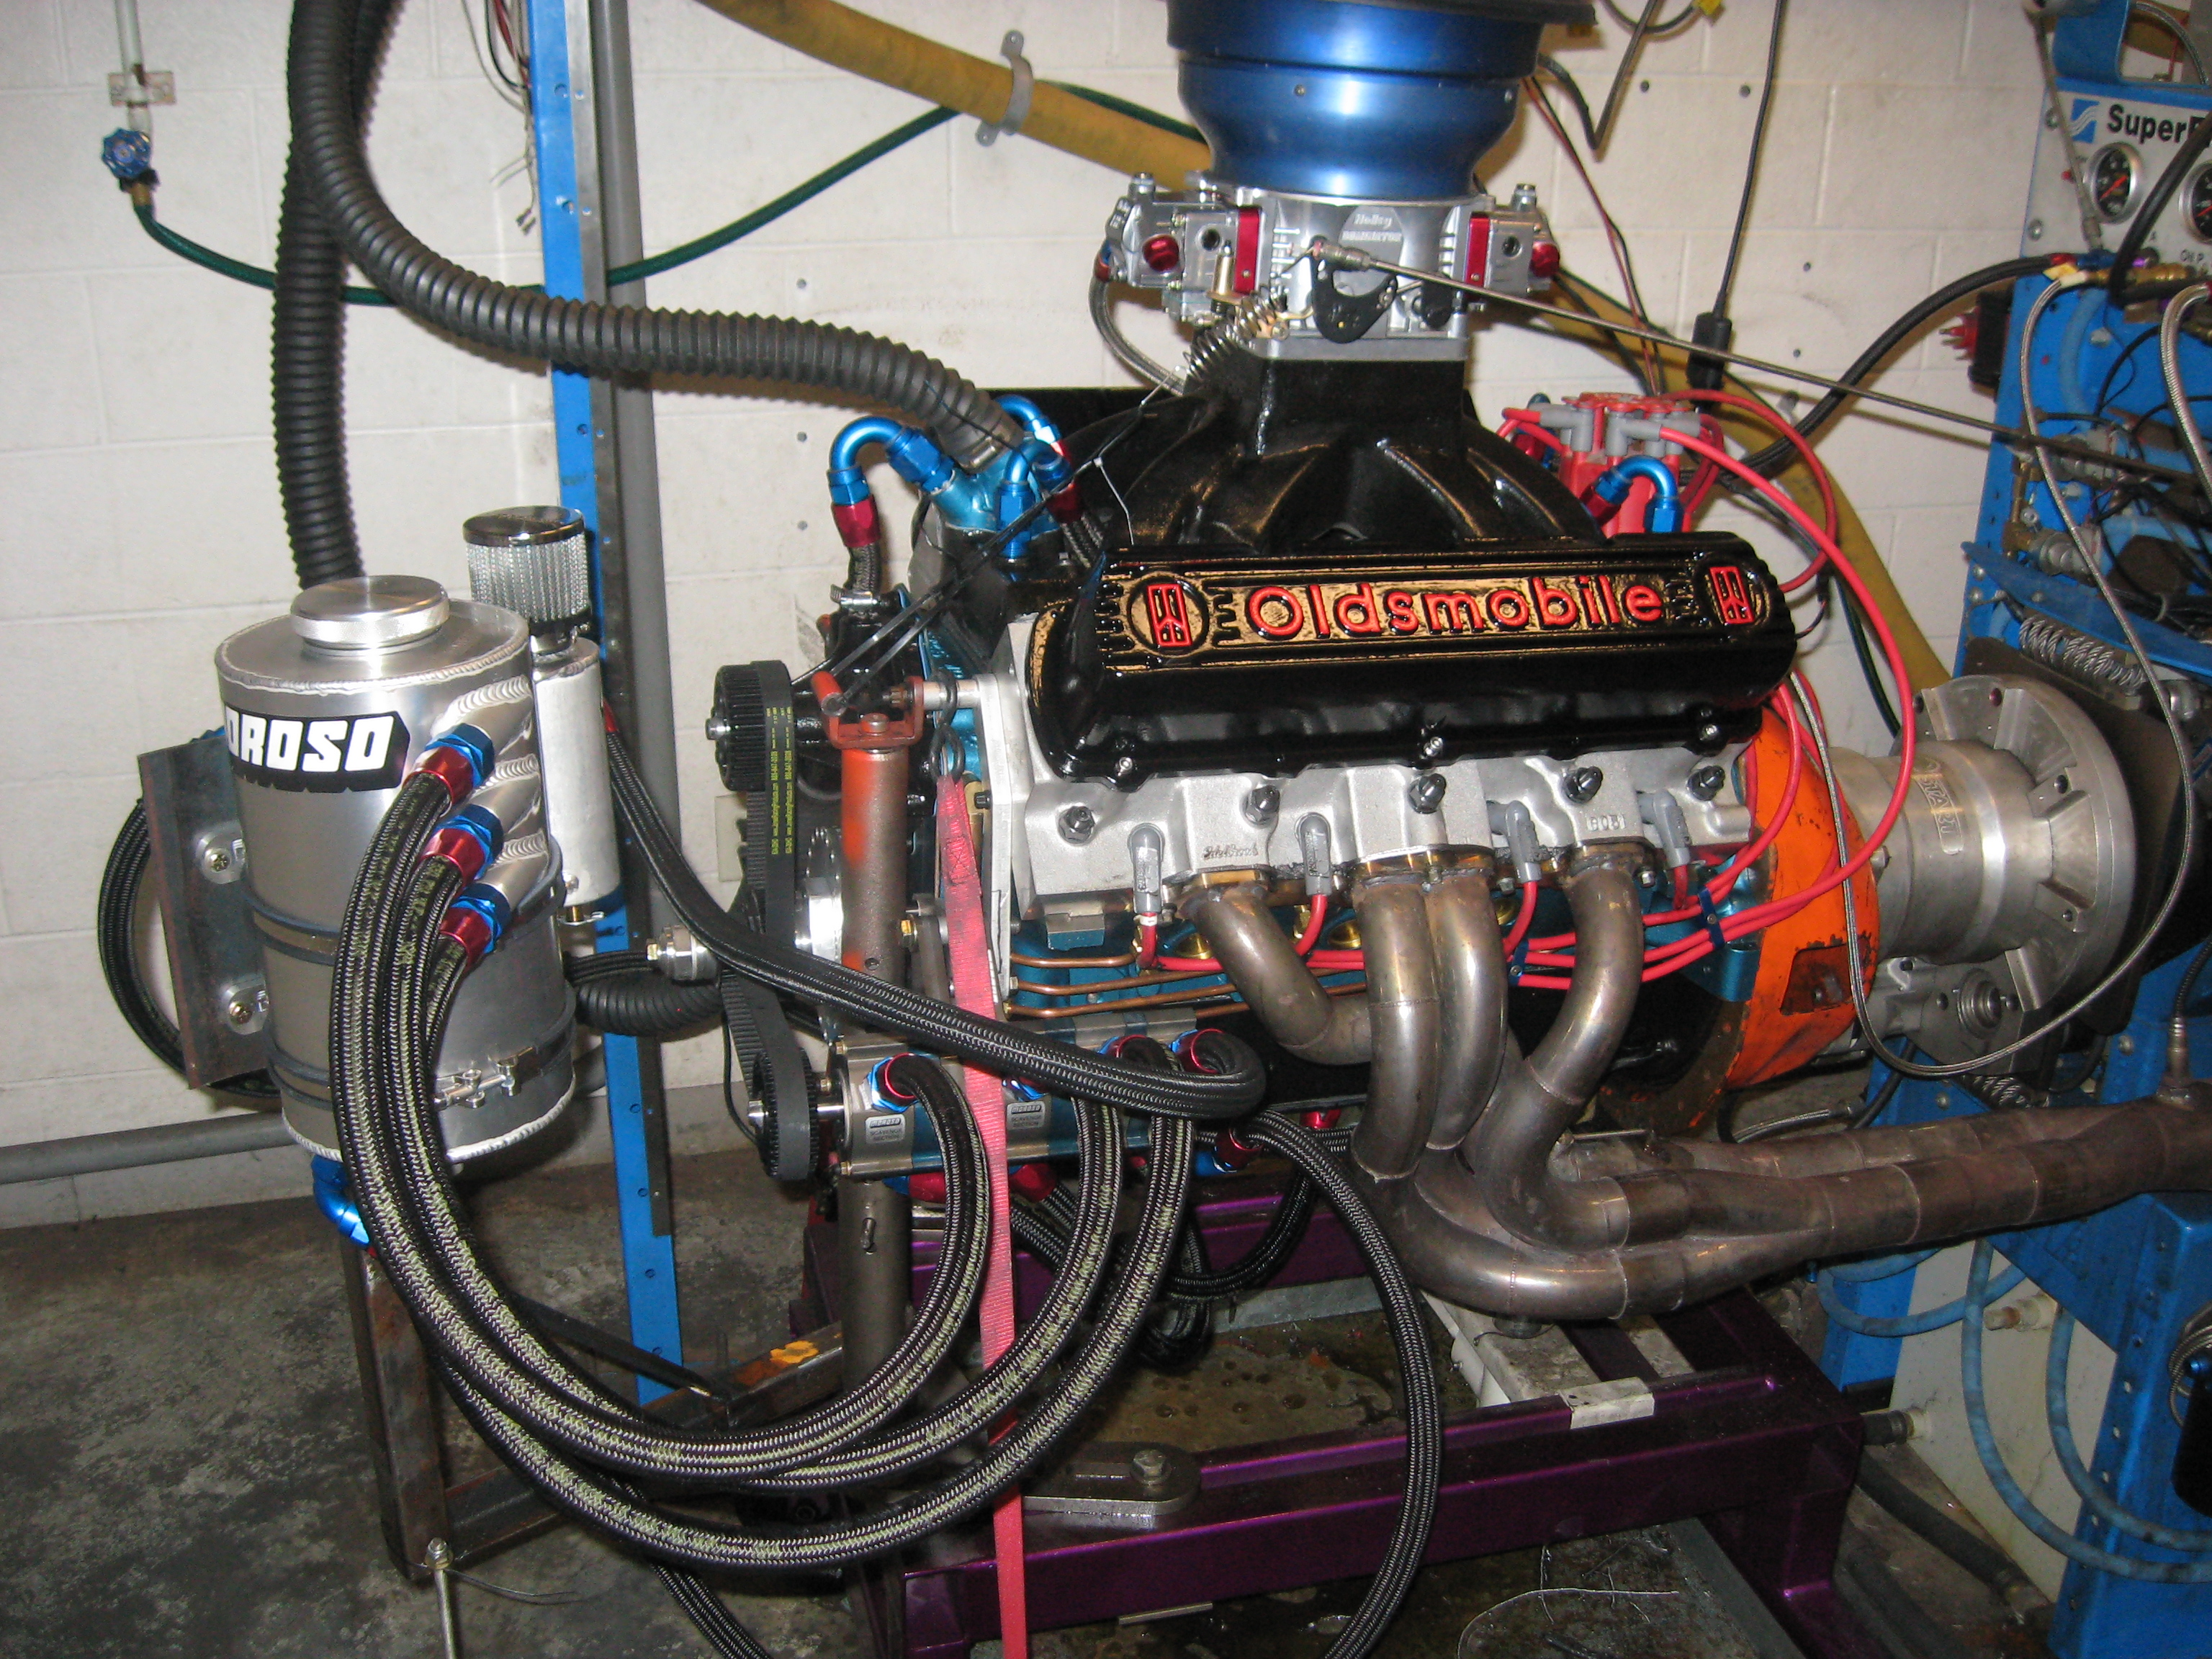 Olds 403 Distributor Wiring Diagram Library This Project Started A Little Over 2 Or Was It 3 Years Ago